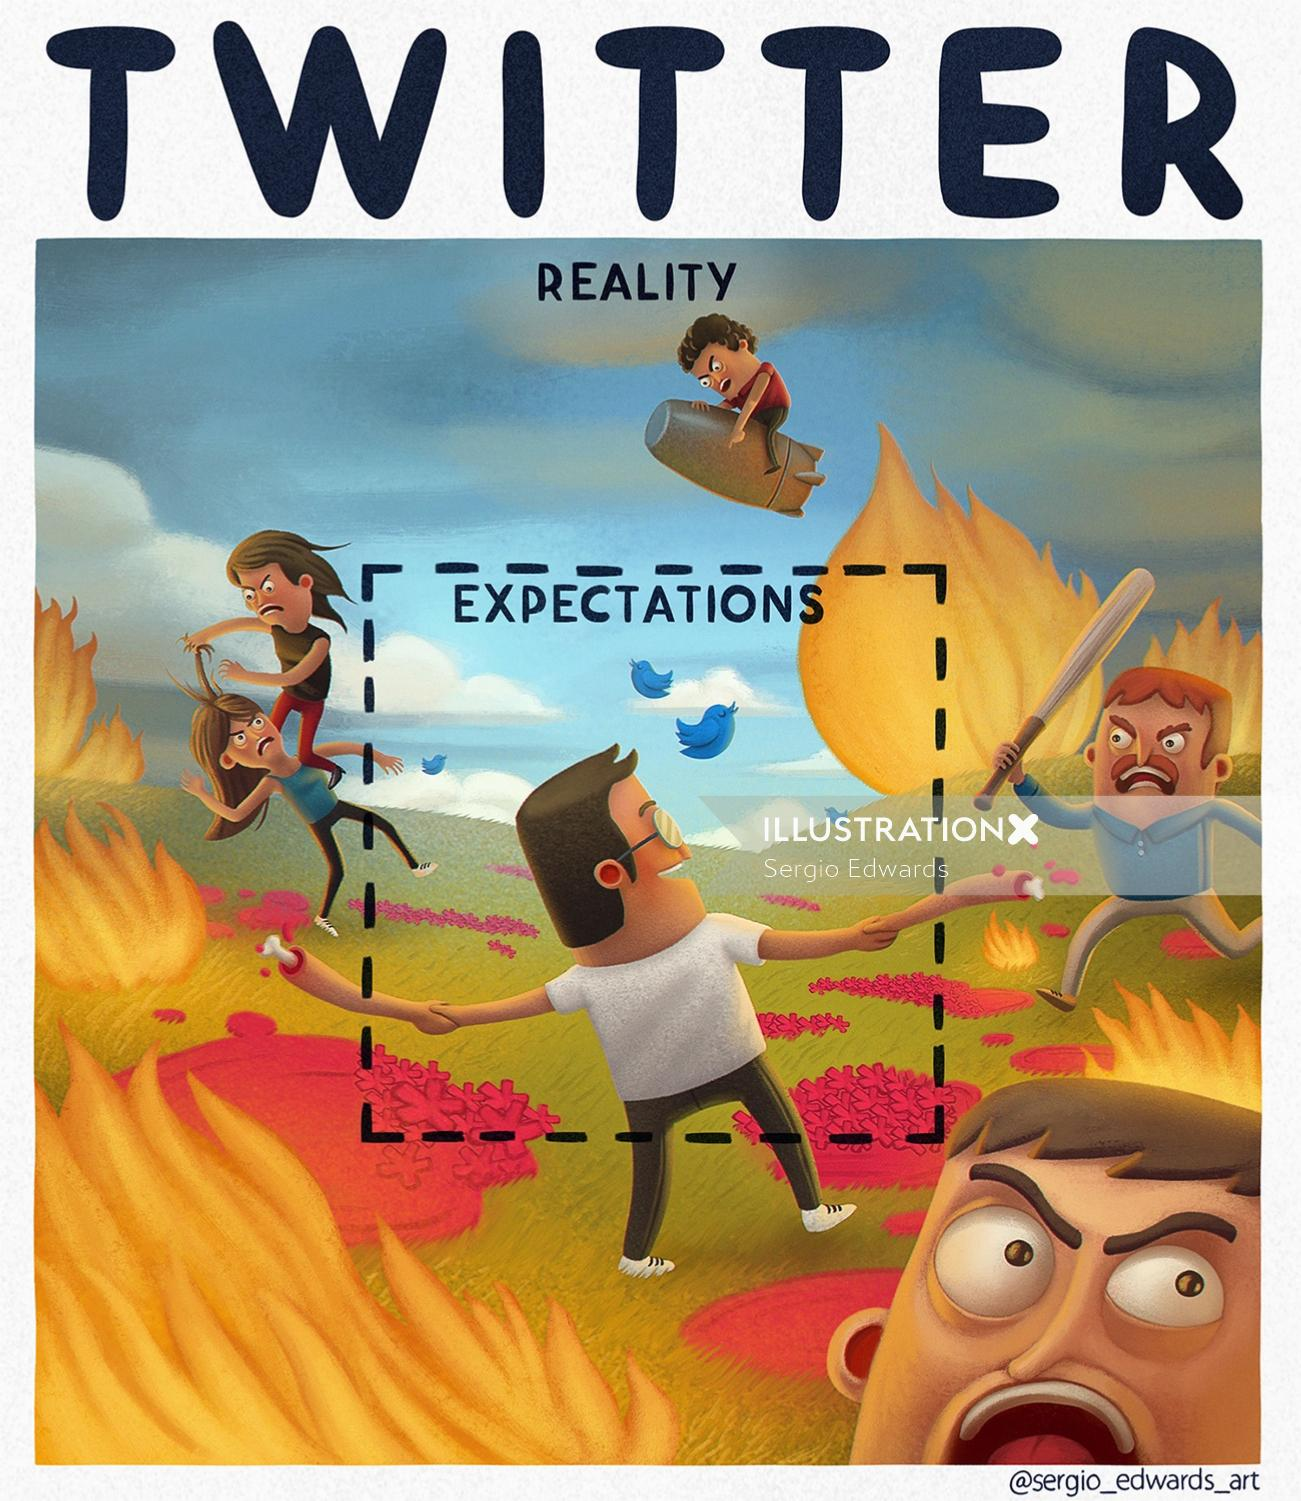 Humorous illustration on Twitter reality and expectations